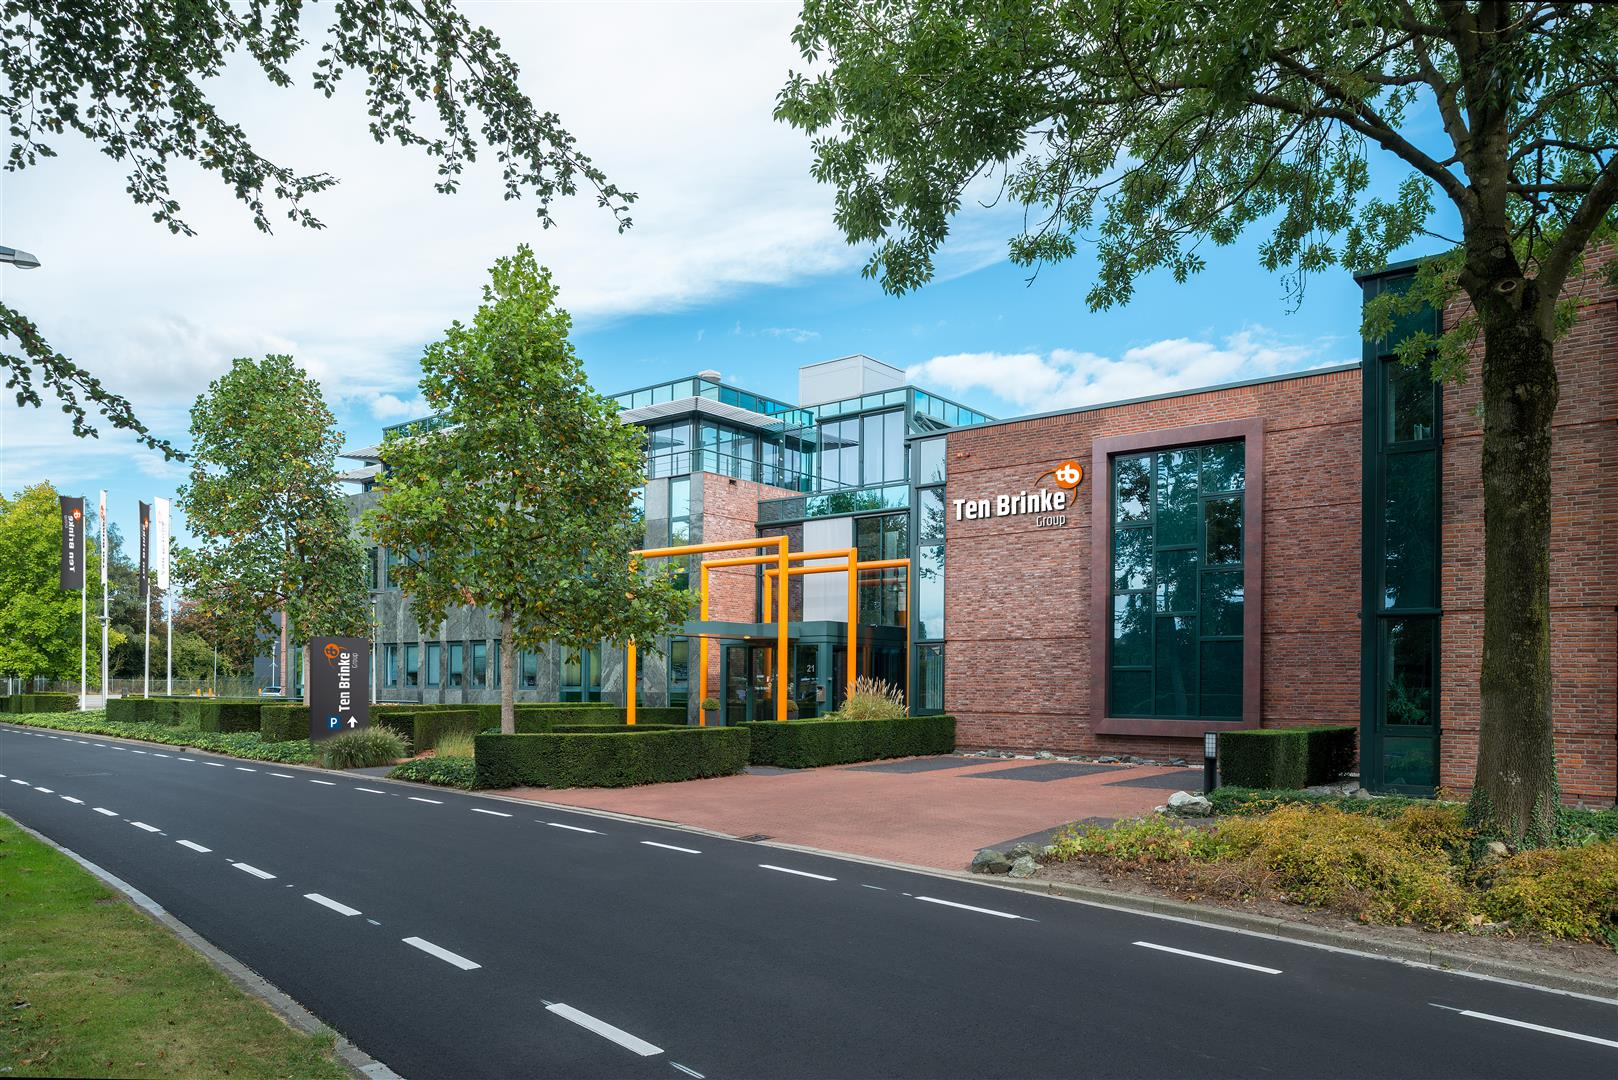 ten brinke investments varsseveld